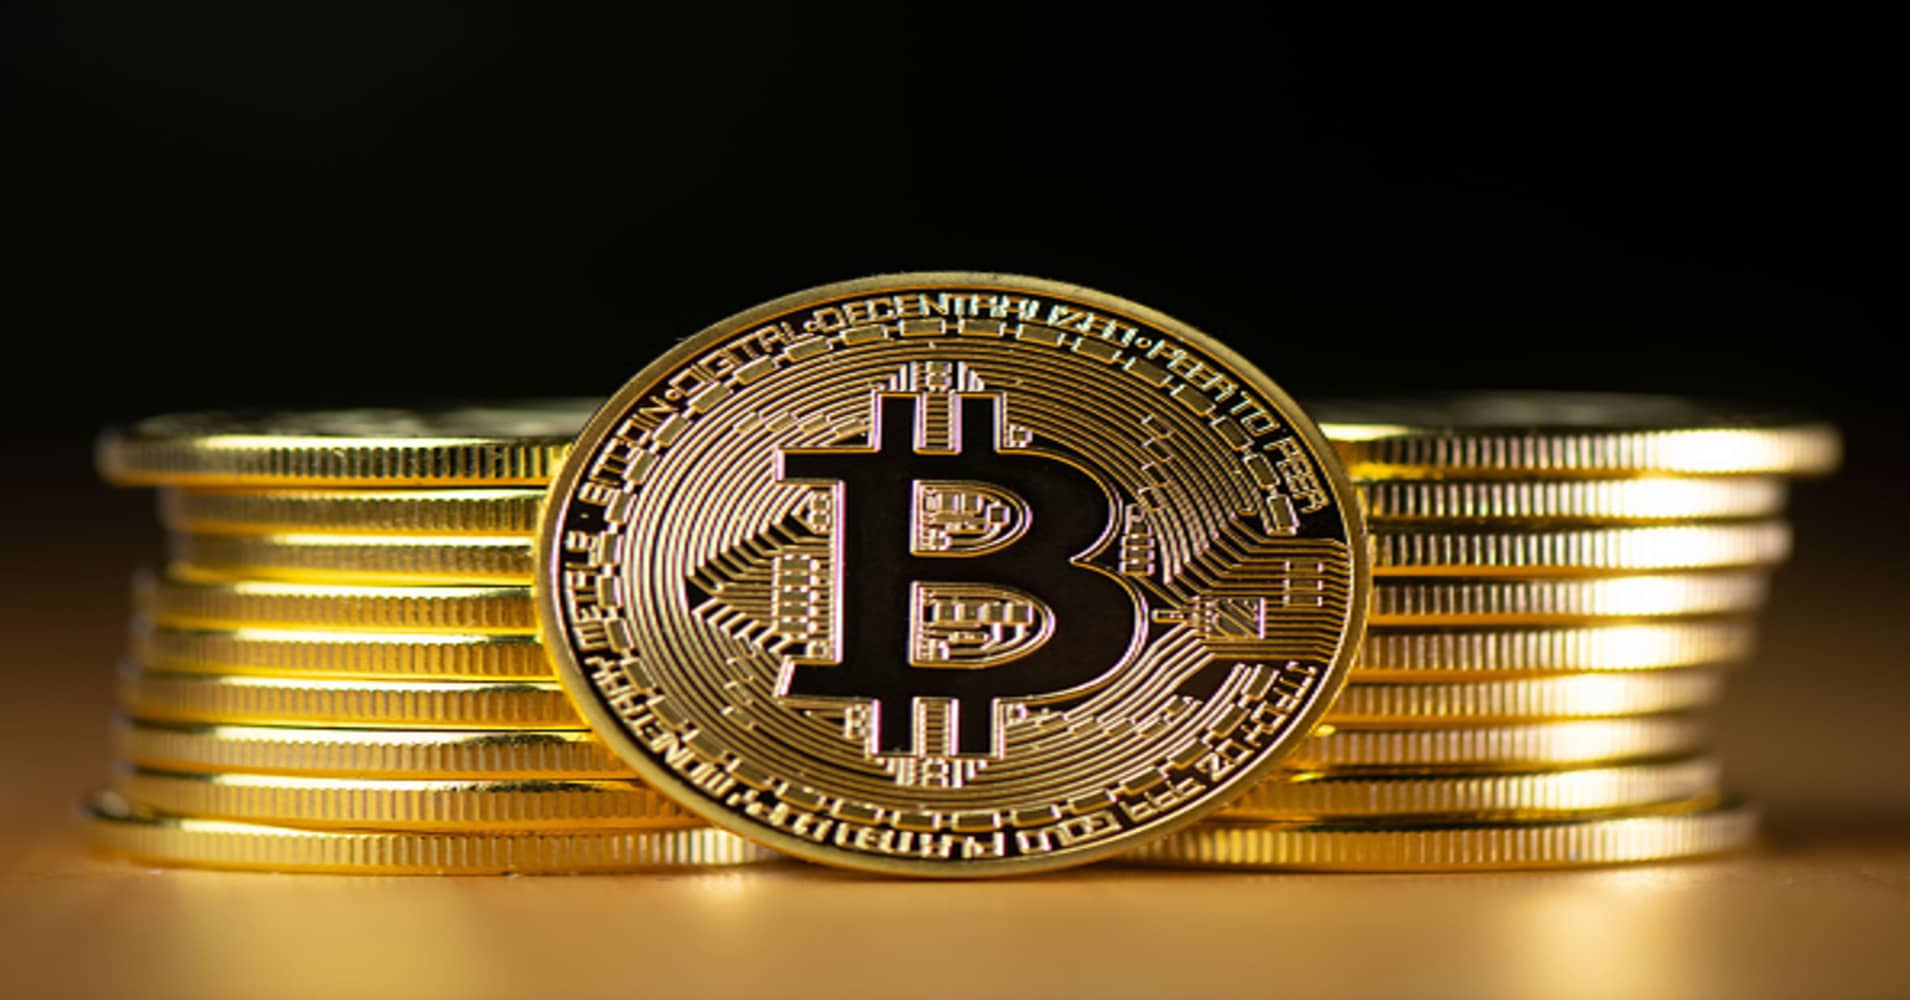 SEC has valid concerns over bitcoin before approving ETFs, says WSJ's Vigna